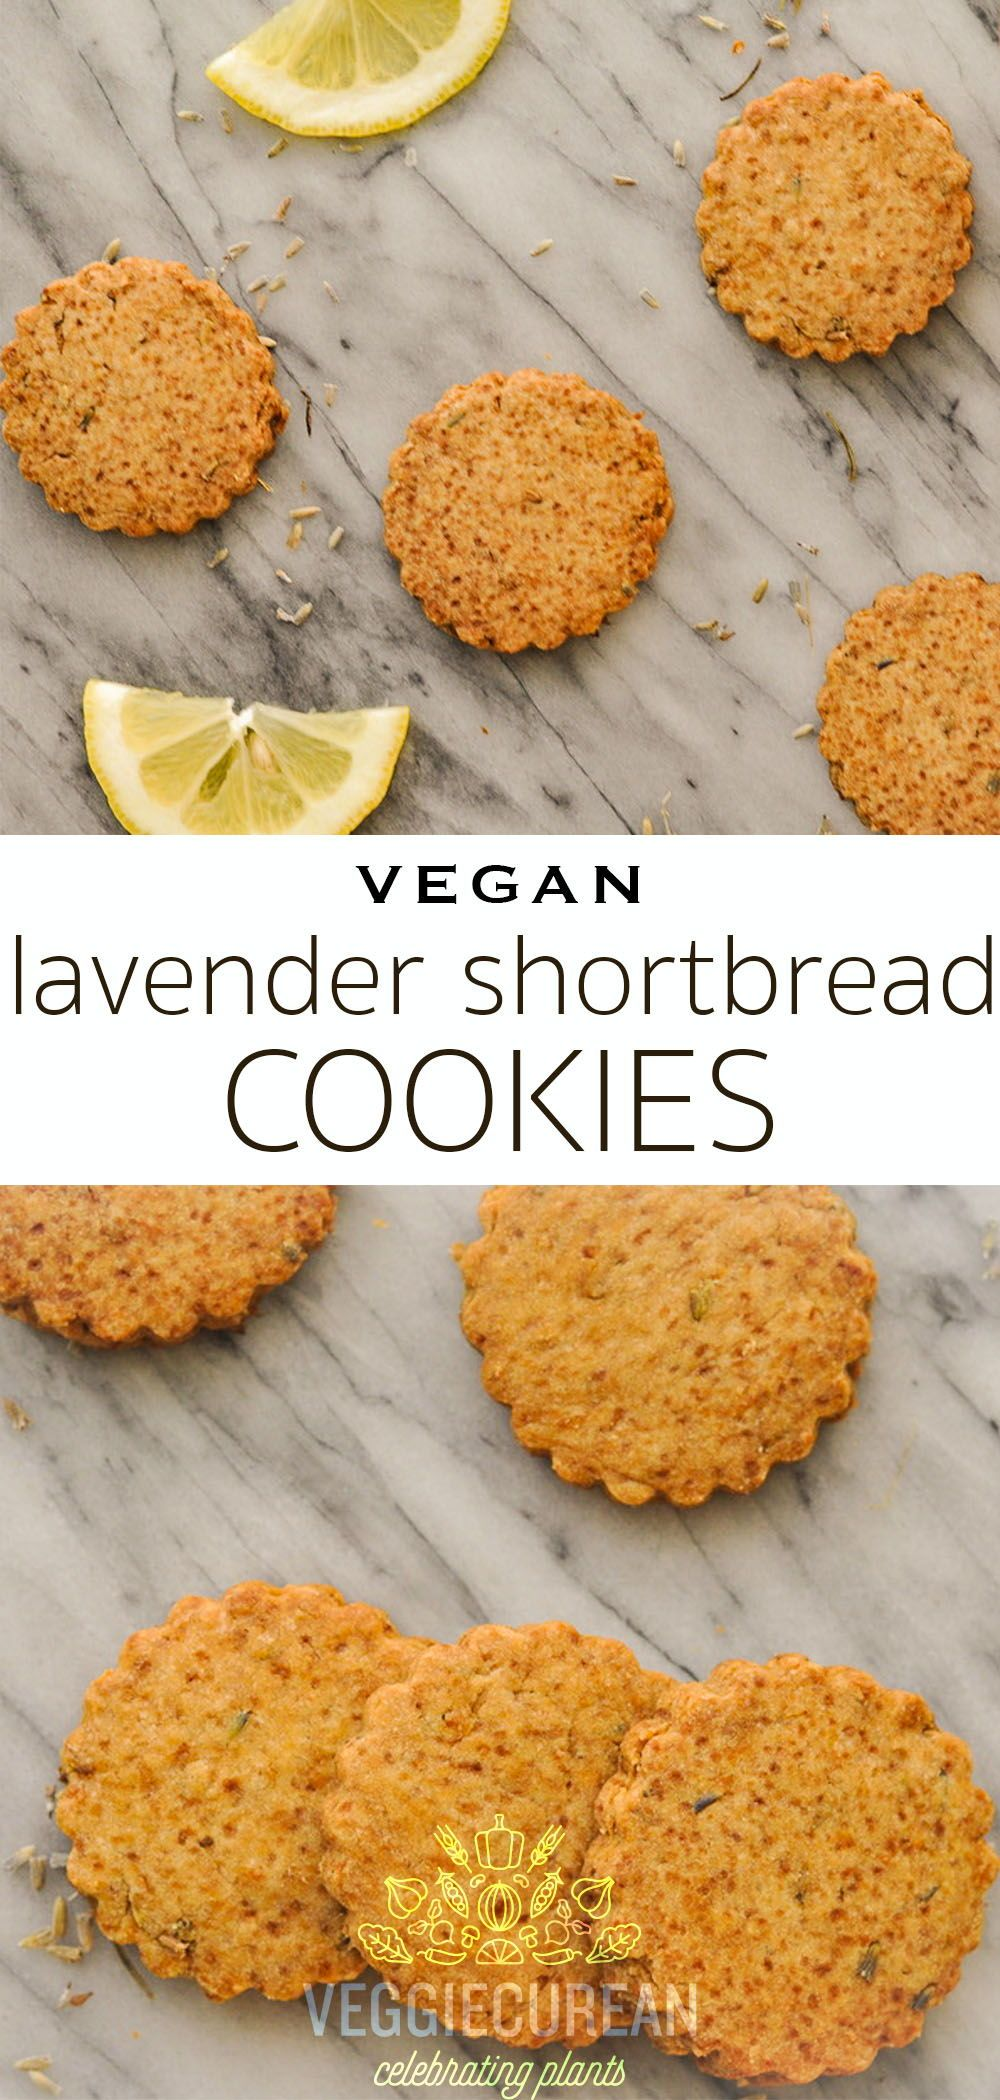 With just five ingredients these lightly scented Lavender Shortbread Cookies infused with lemon zest and lavender flowers are the perfect plantbased afternoon snack Theyr...